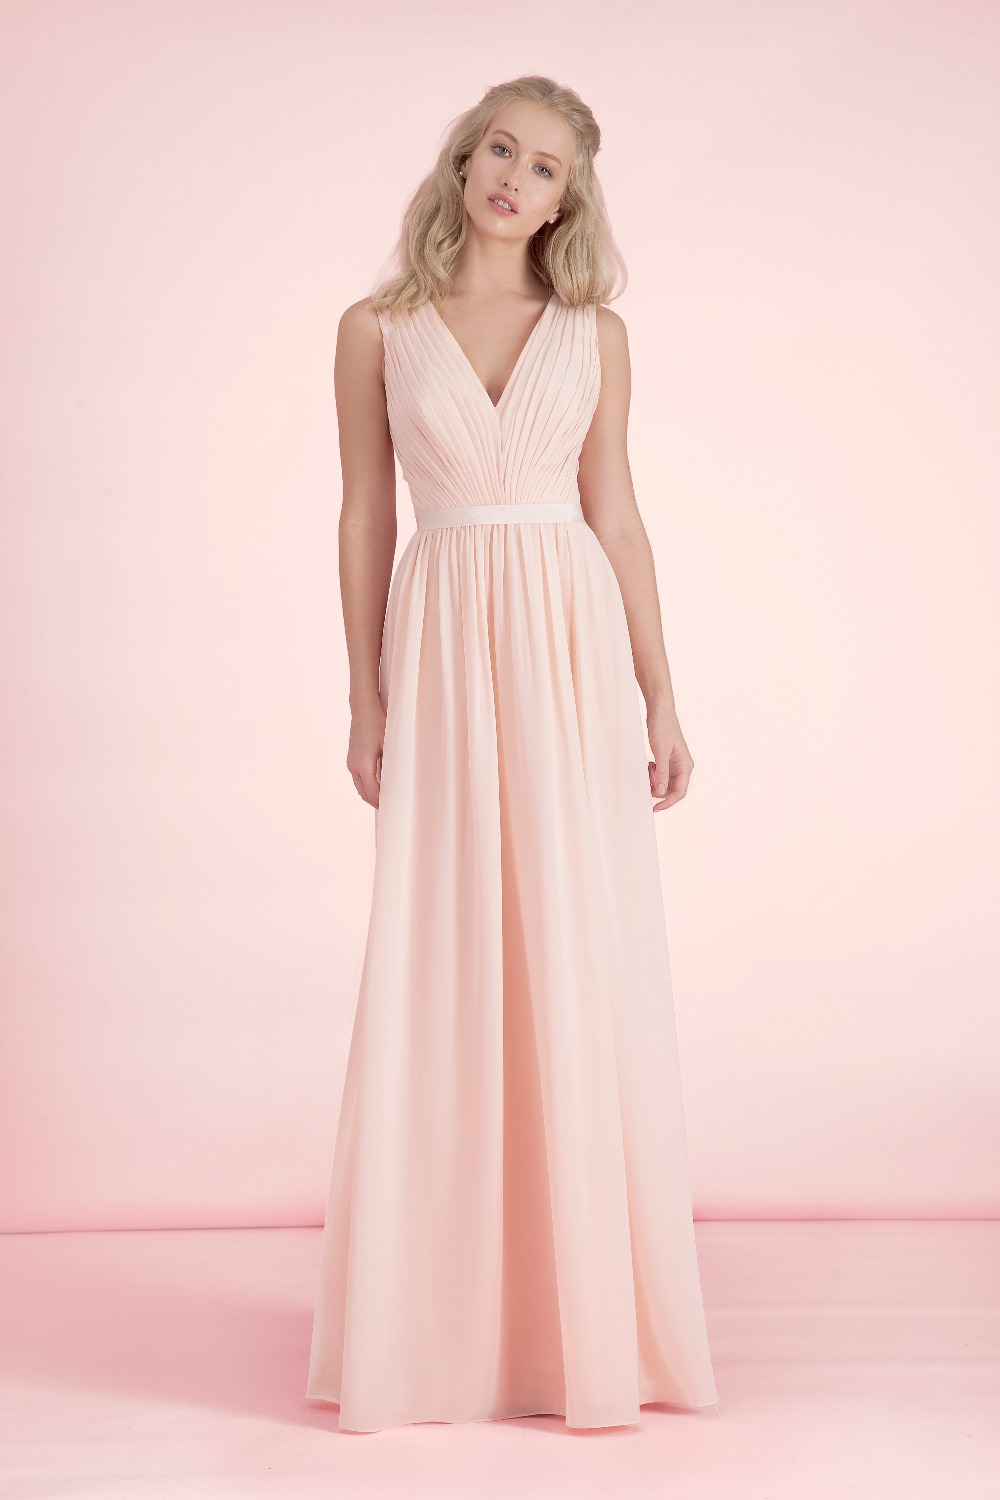 Elegant fashion simple light pink bridesmaid dresses v neck low elegant fashion simple light pink bridesmaid dresses v neck low back chiffon long wedding party dresses vestido de festa bn97 in bridesmaid dresses from ombrellifo Gallery